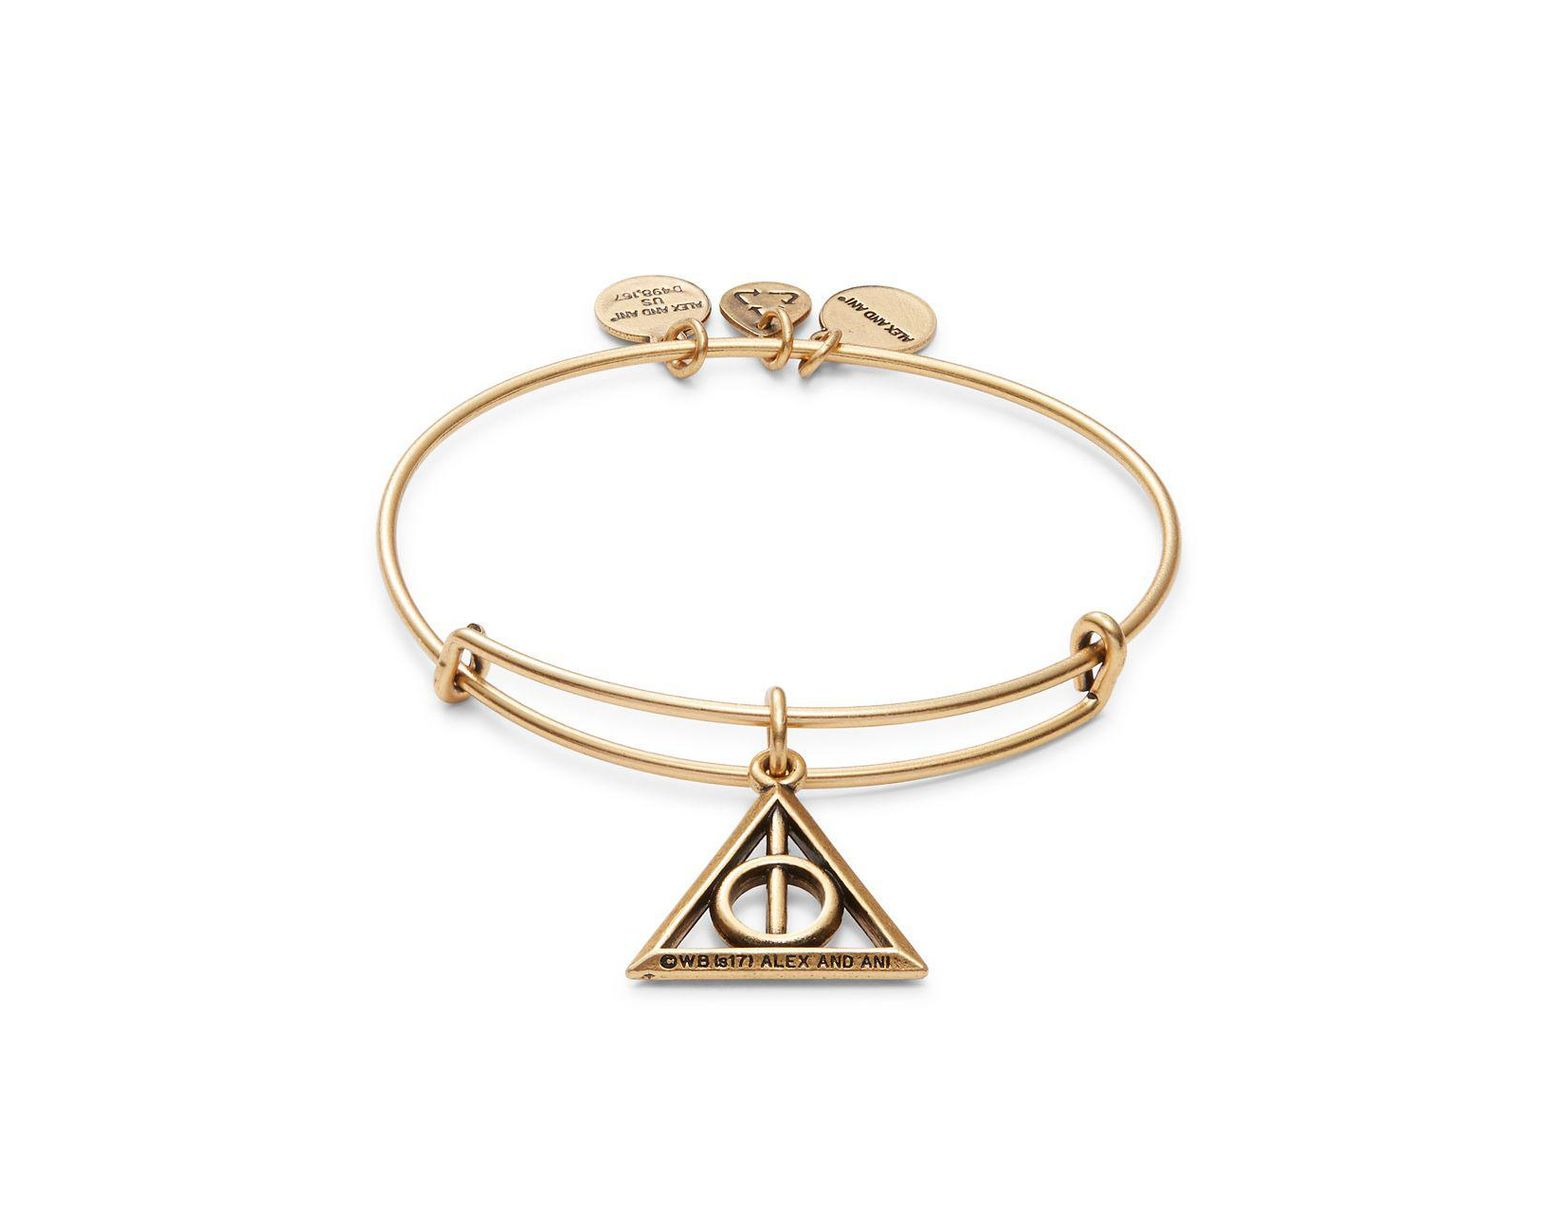 7b077432ac4a28 ALEX AND ANI Harry Potter Deathly Hallows Charm Bracelet in Metallic - Lyst